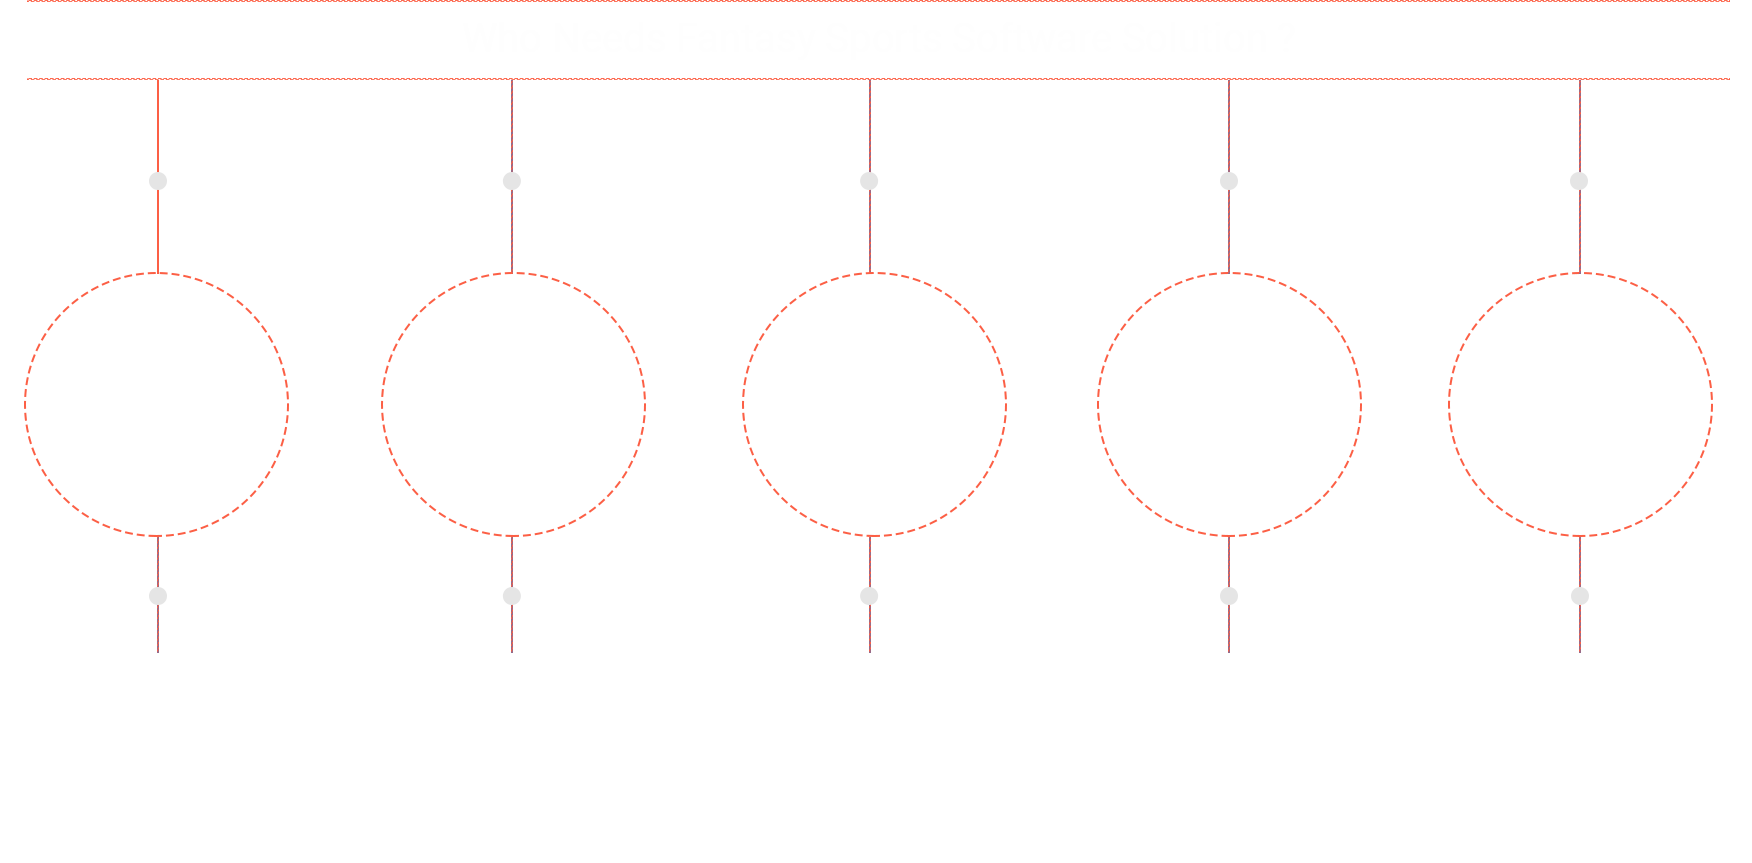 who needs fantasy sports software solutions?